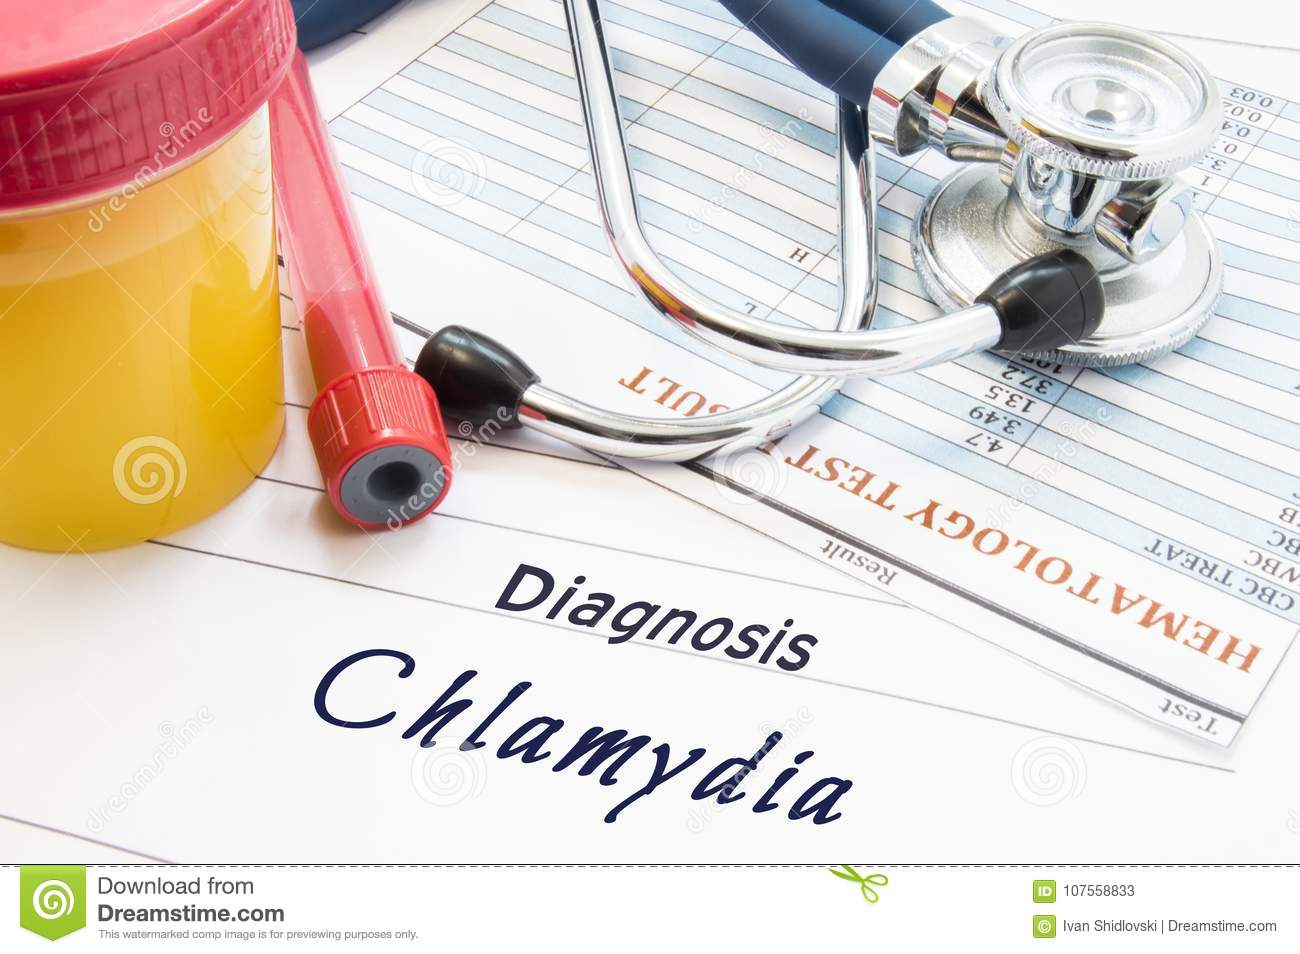 Diagnosis Chlamydia. Stethoscope, lab test tube with blood, container with urine and result of blood laboratory analysis are near